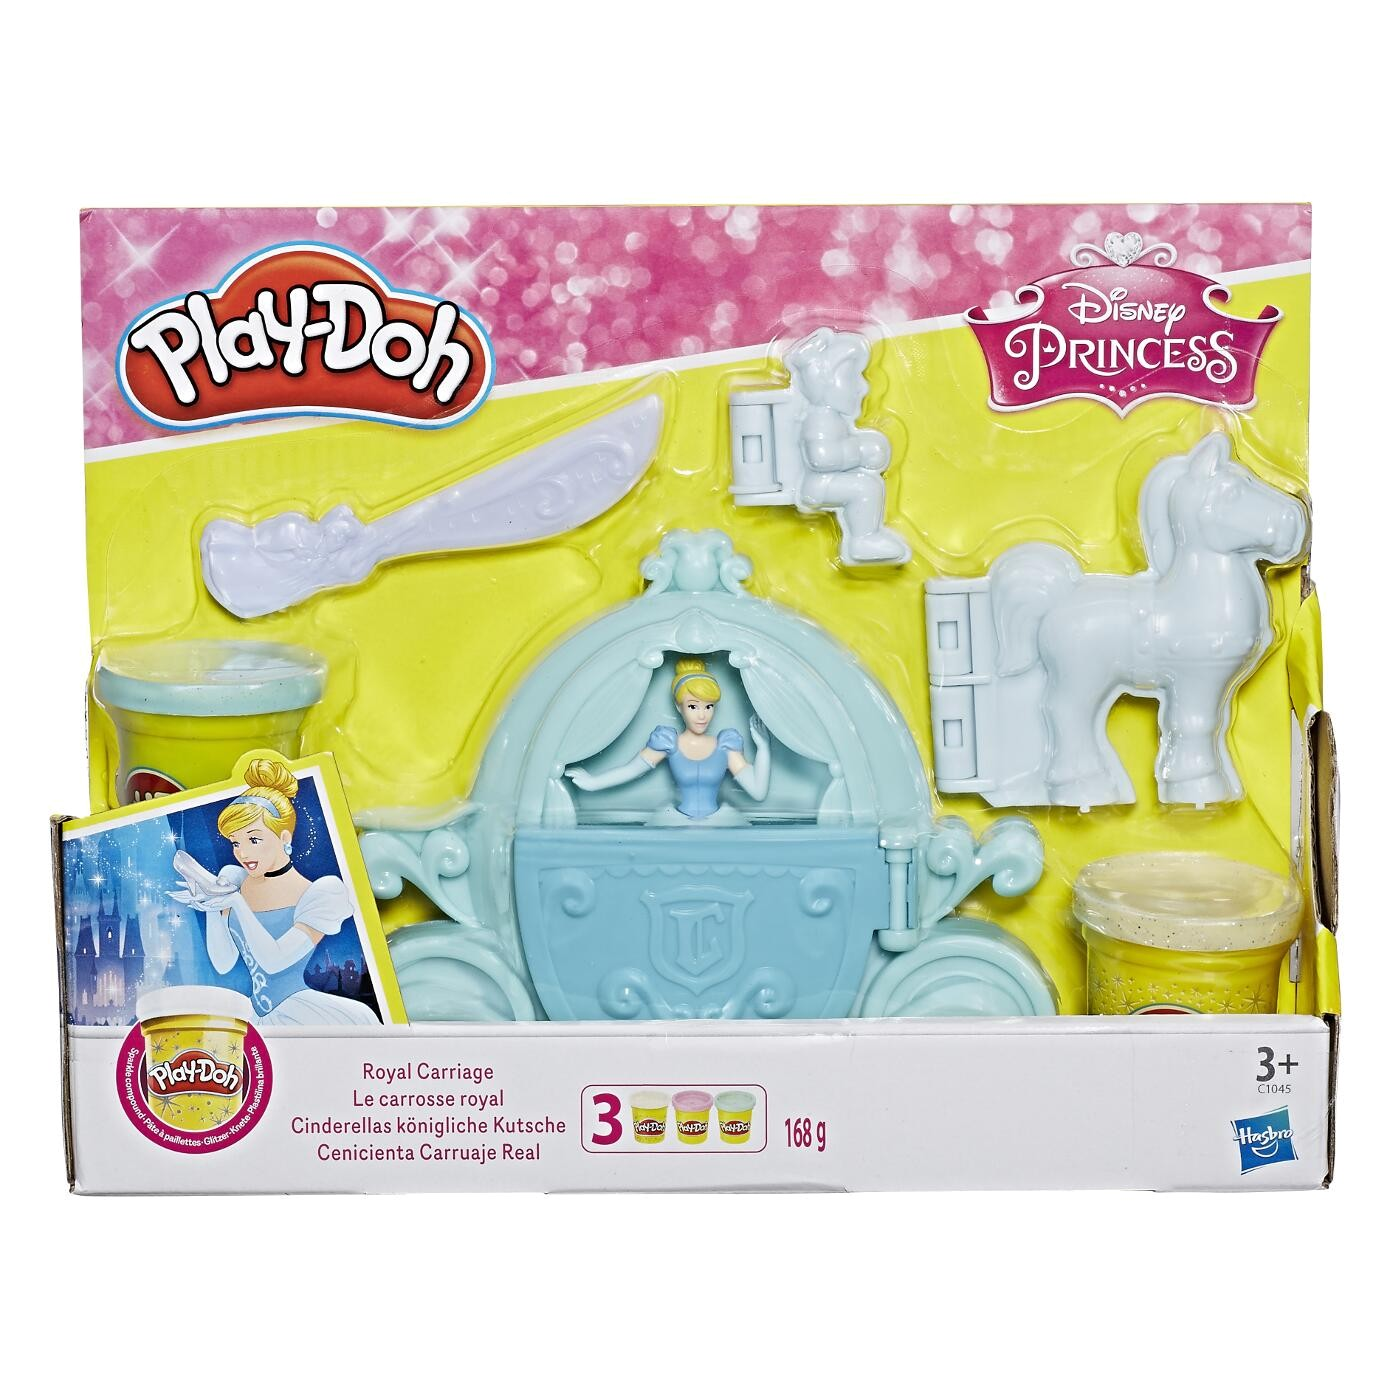 PLAY DOH ROYAL CARRIAGE